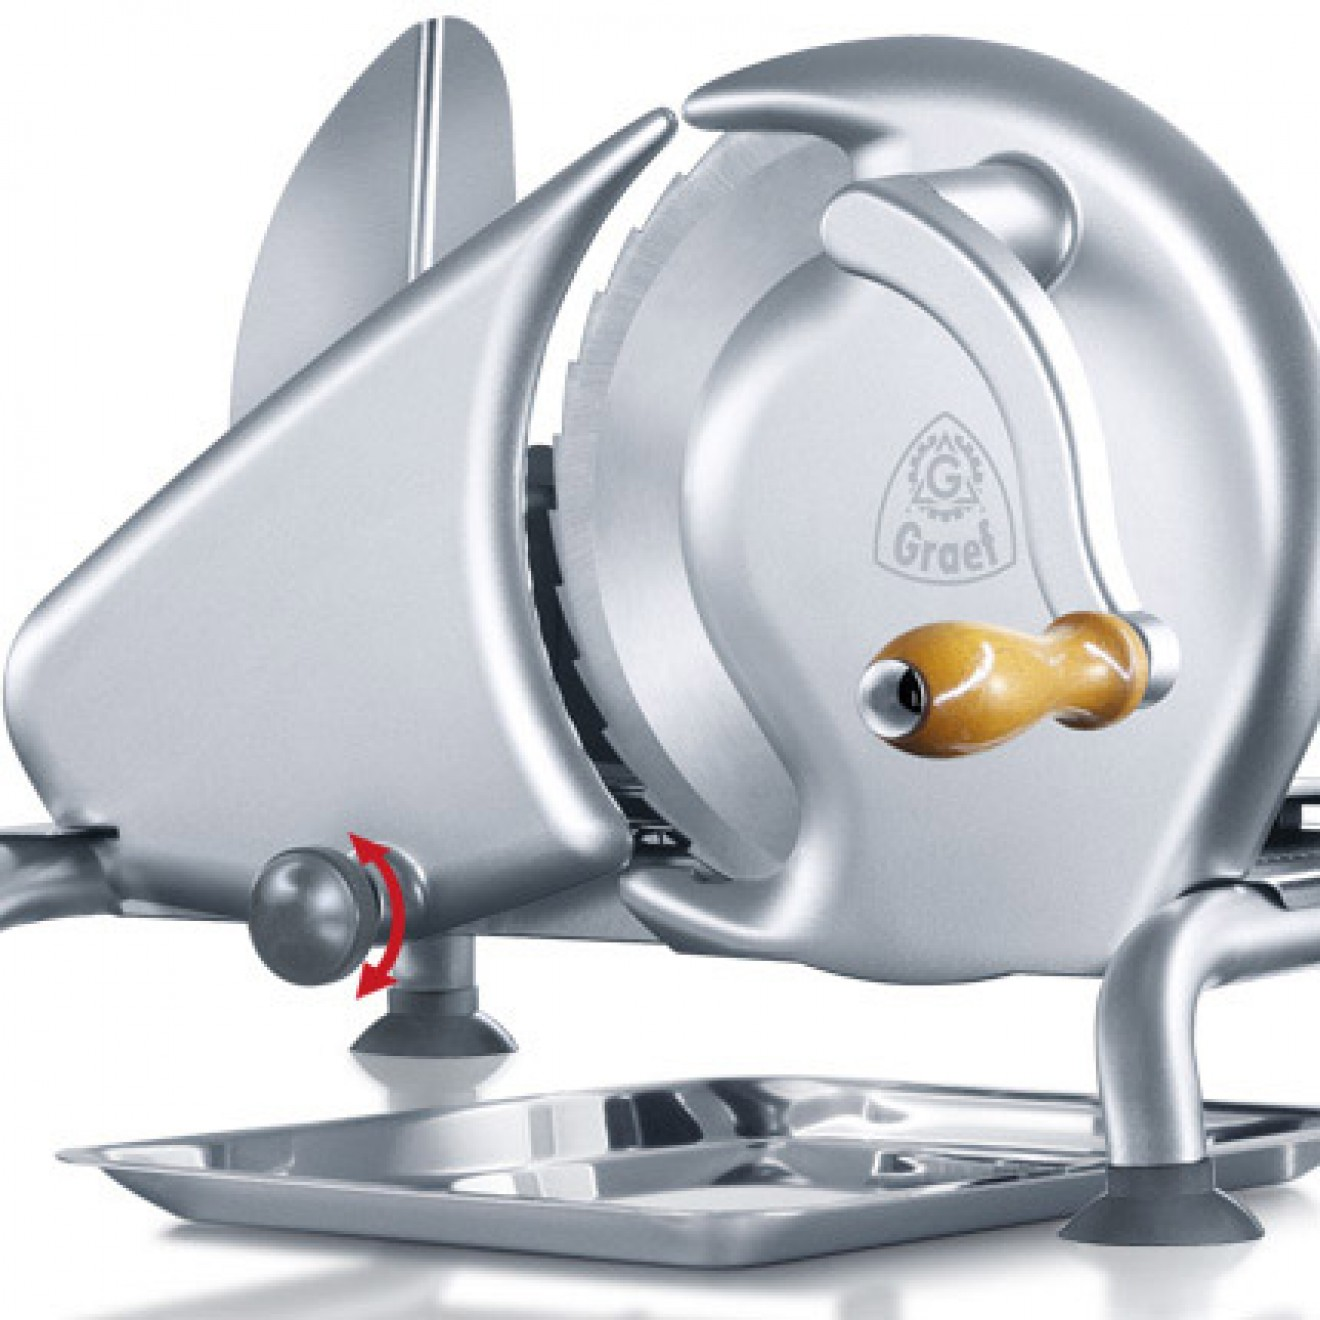 Graef H9 manually operated slicer